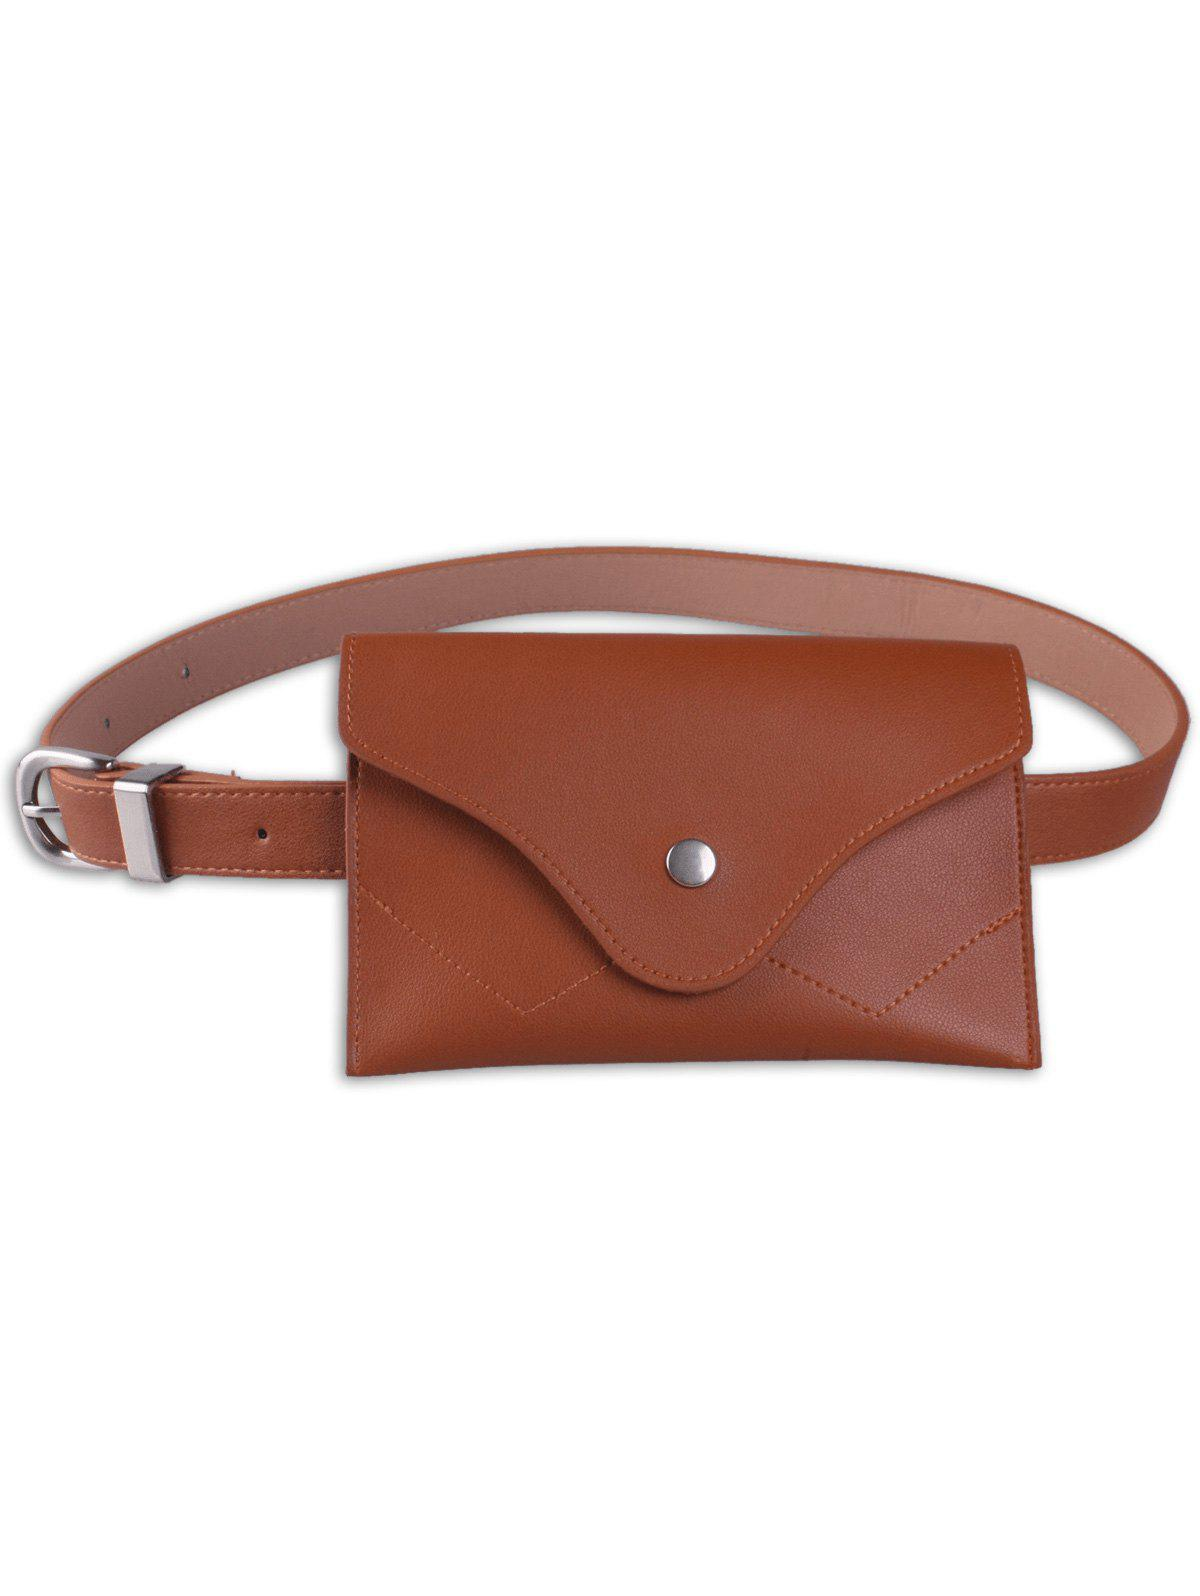 New Faux Leather Pin Buckle Waist Belt with Bag